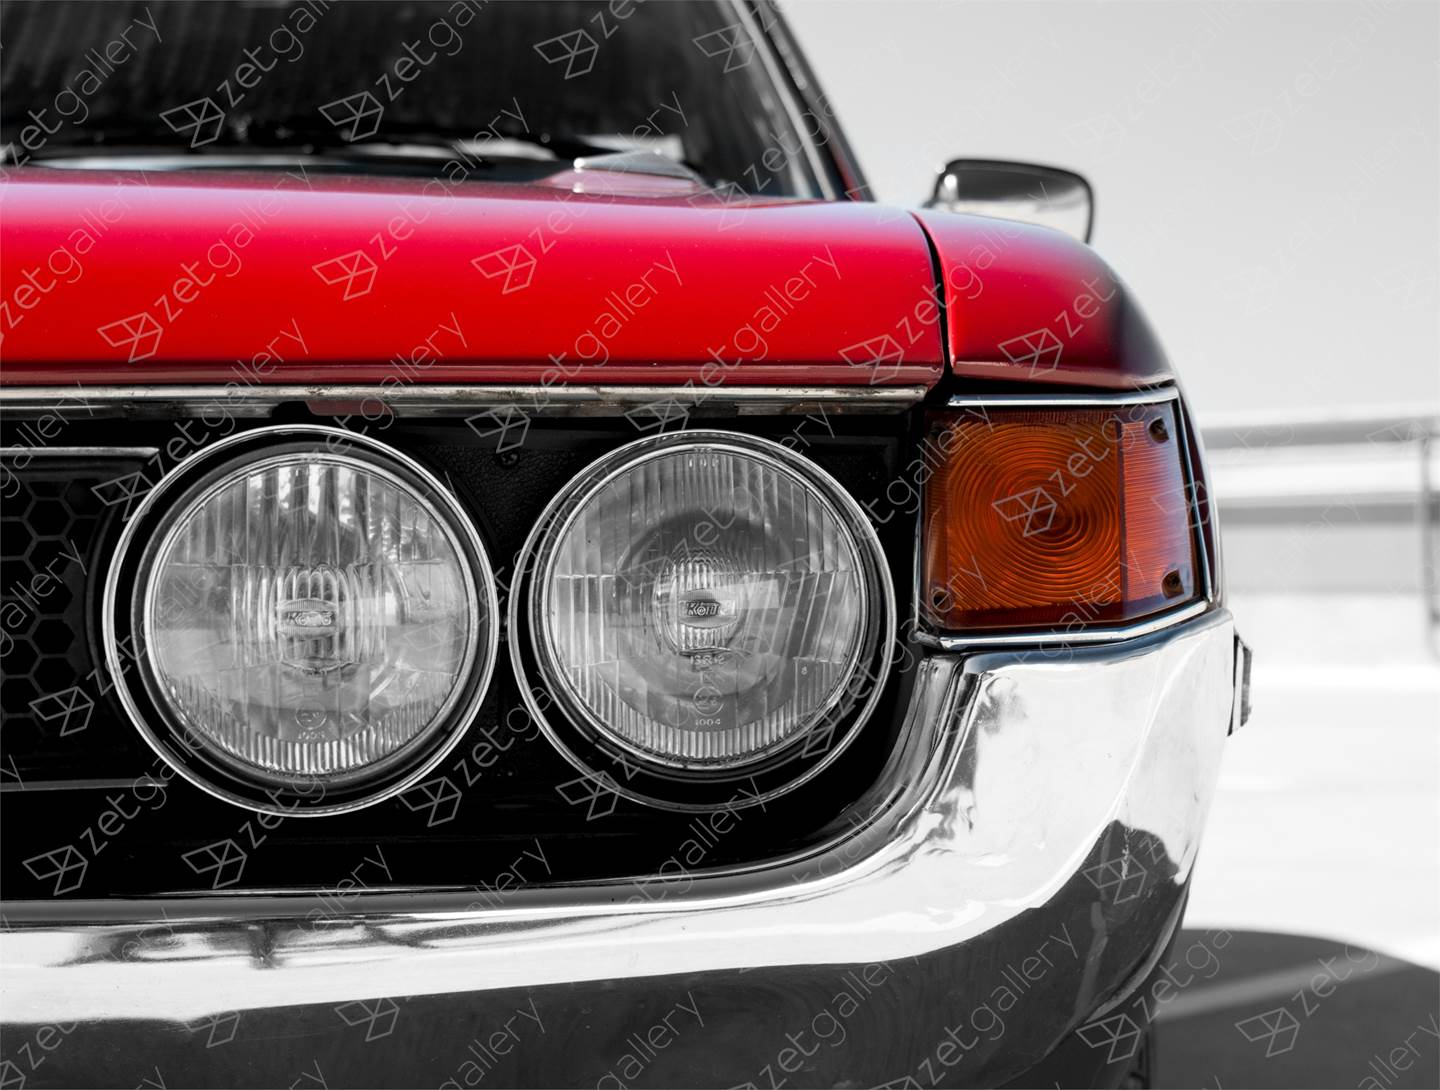 Toyota Celica GT 02, original Avant-Garde Digital Photography by Yggdrasil Art